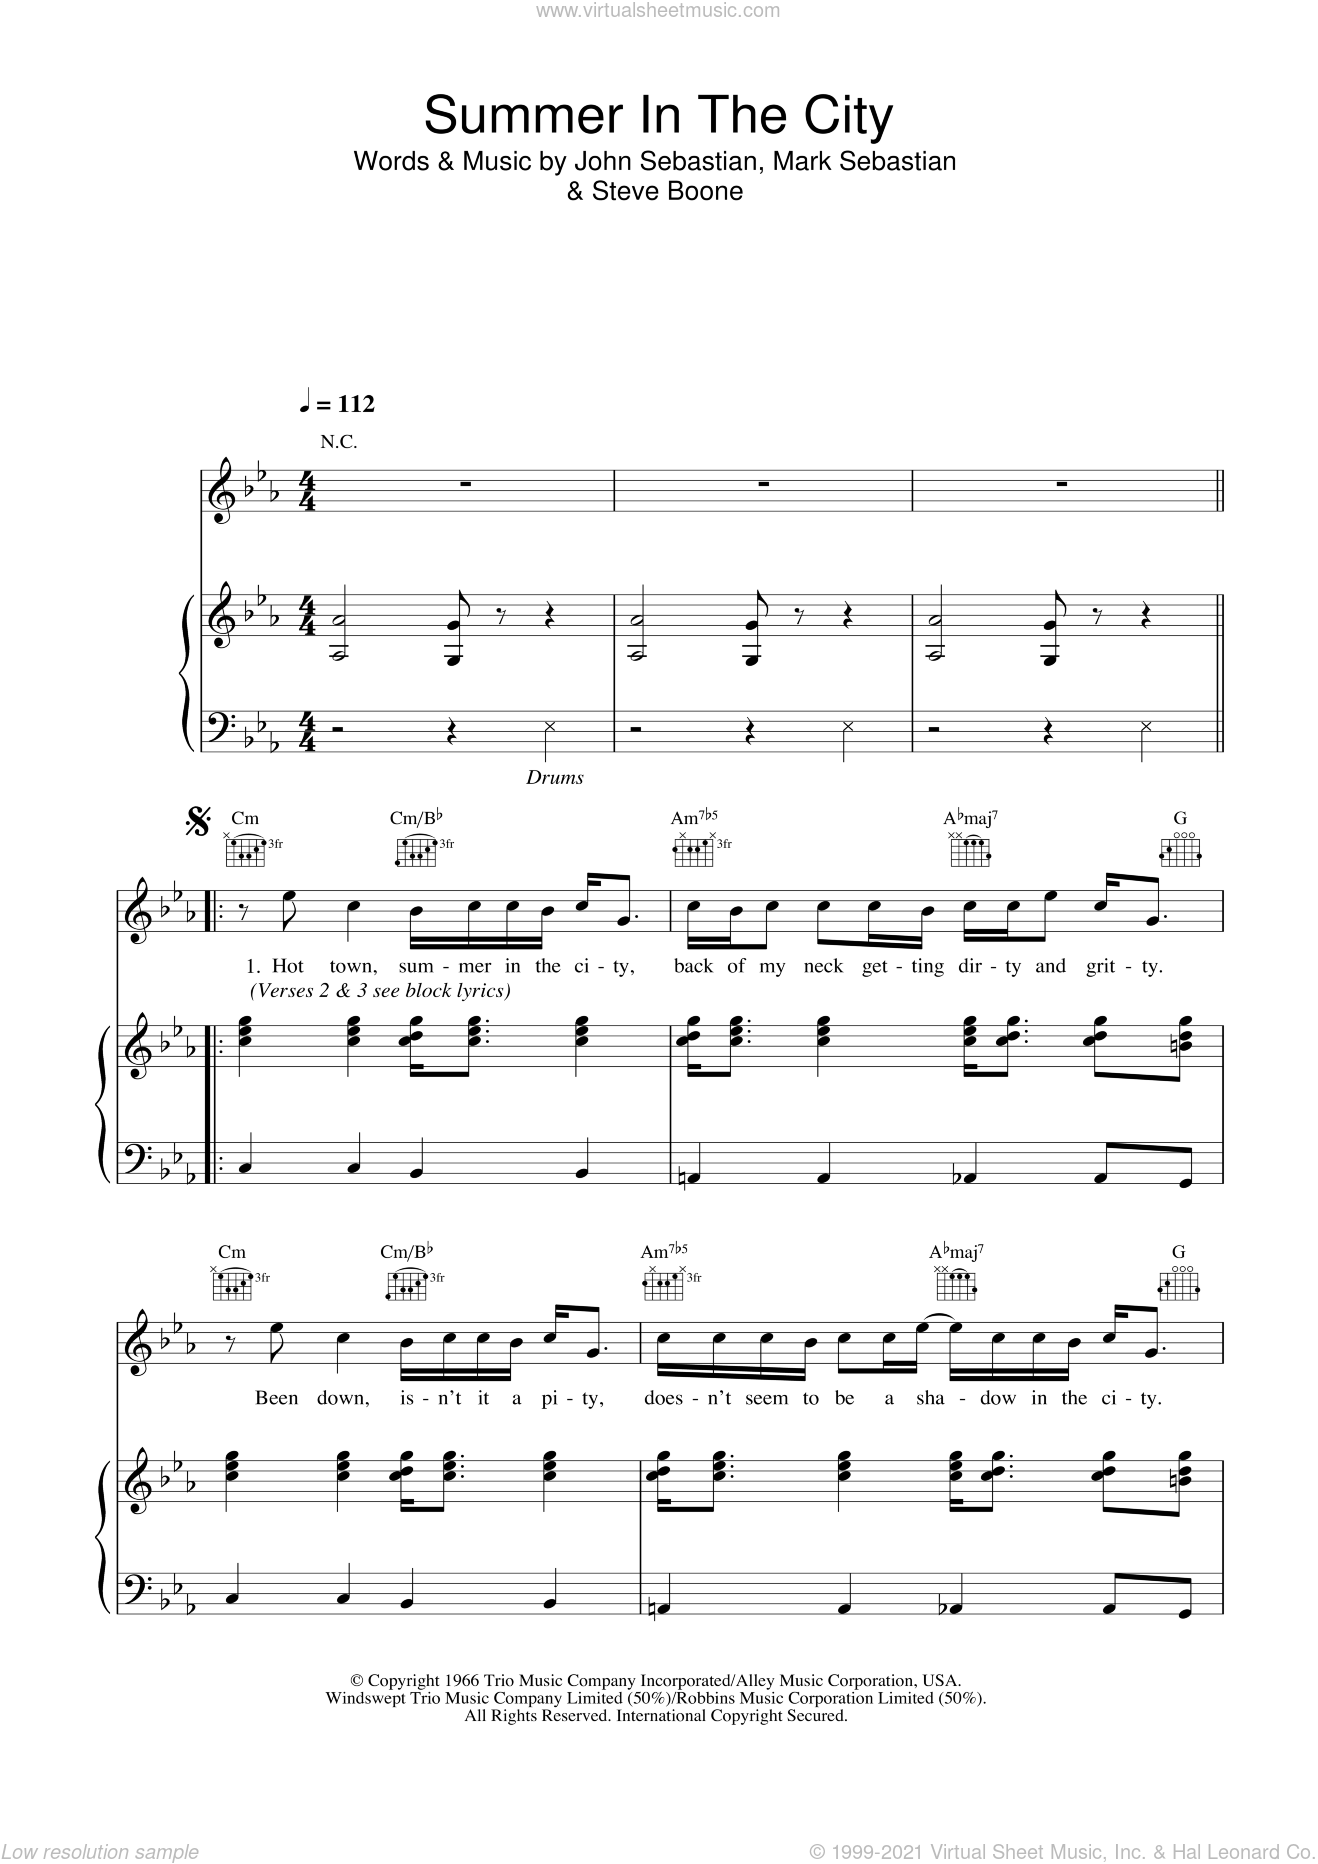 Summer In The City sheet music for voice, piano or guitar by Steve Boone